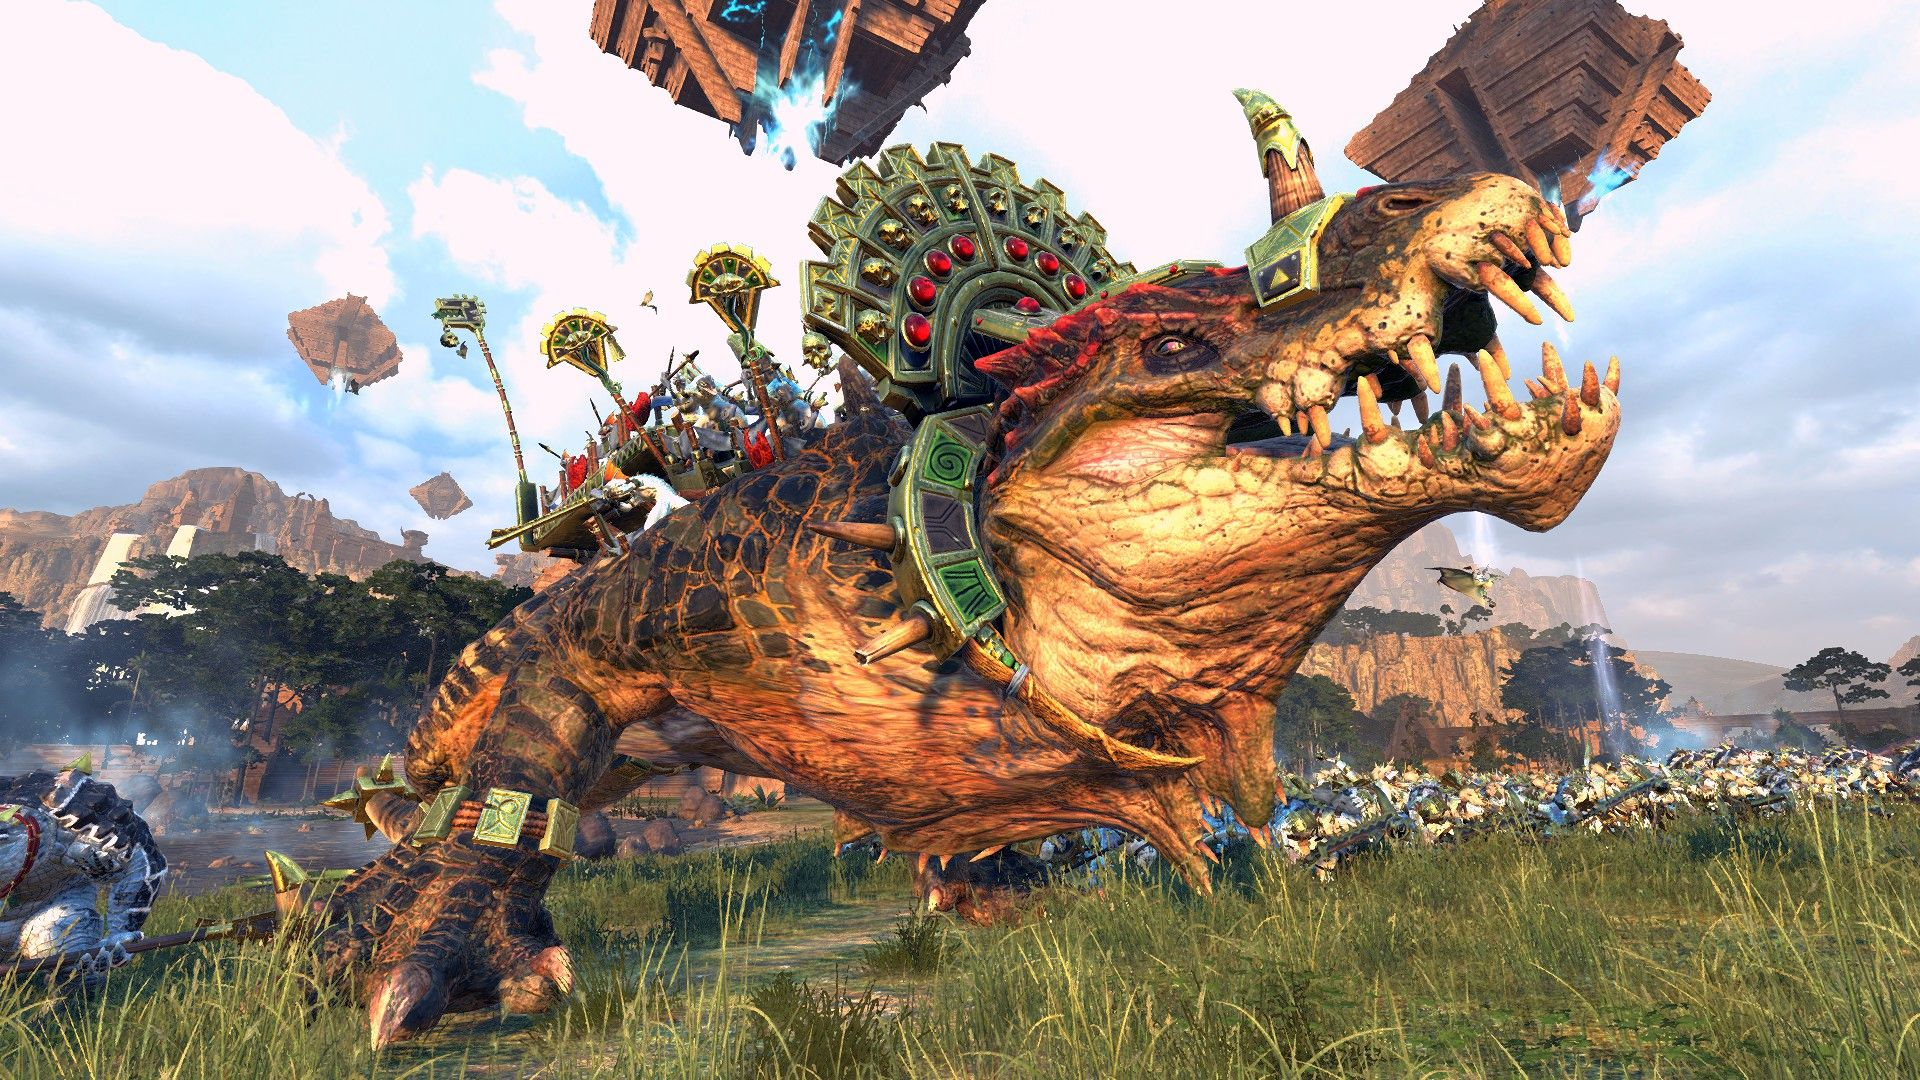 Nakai The Wanderer Dlc : With this addition tho, having nakai, kroxigor ancients and sacred kroxigor, i've found new love for them, more so than saurus (skinks are still amazing), and i love the idea of some kroxigor just being more capable and intelligent for war like the ancients.